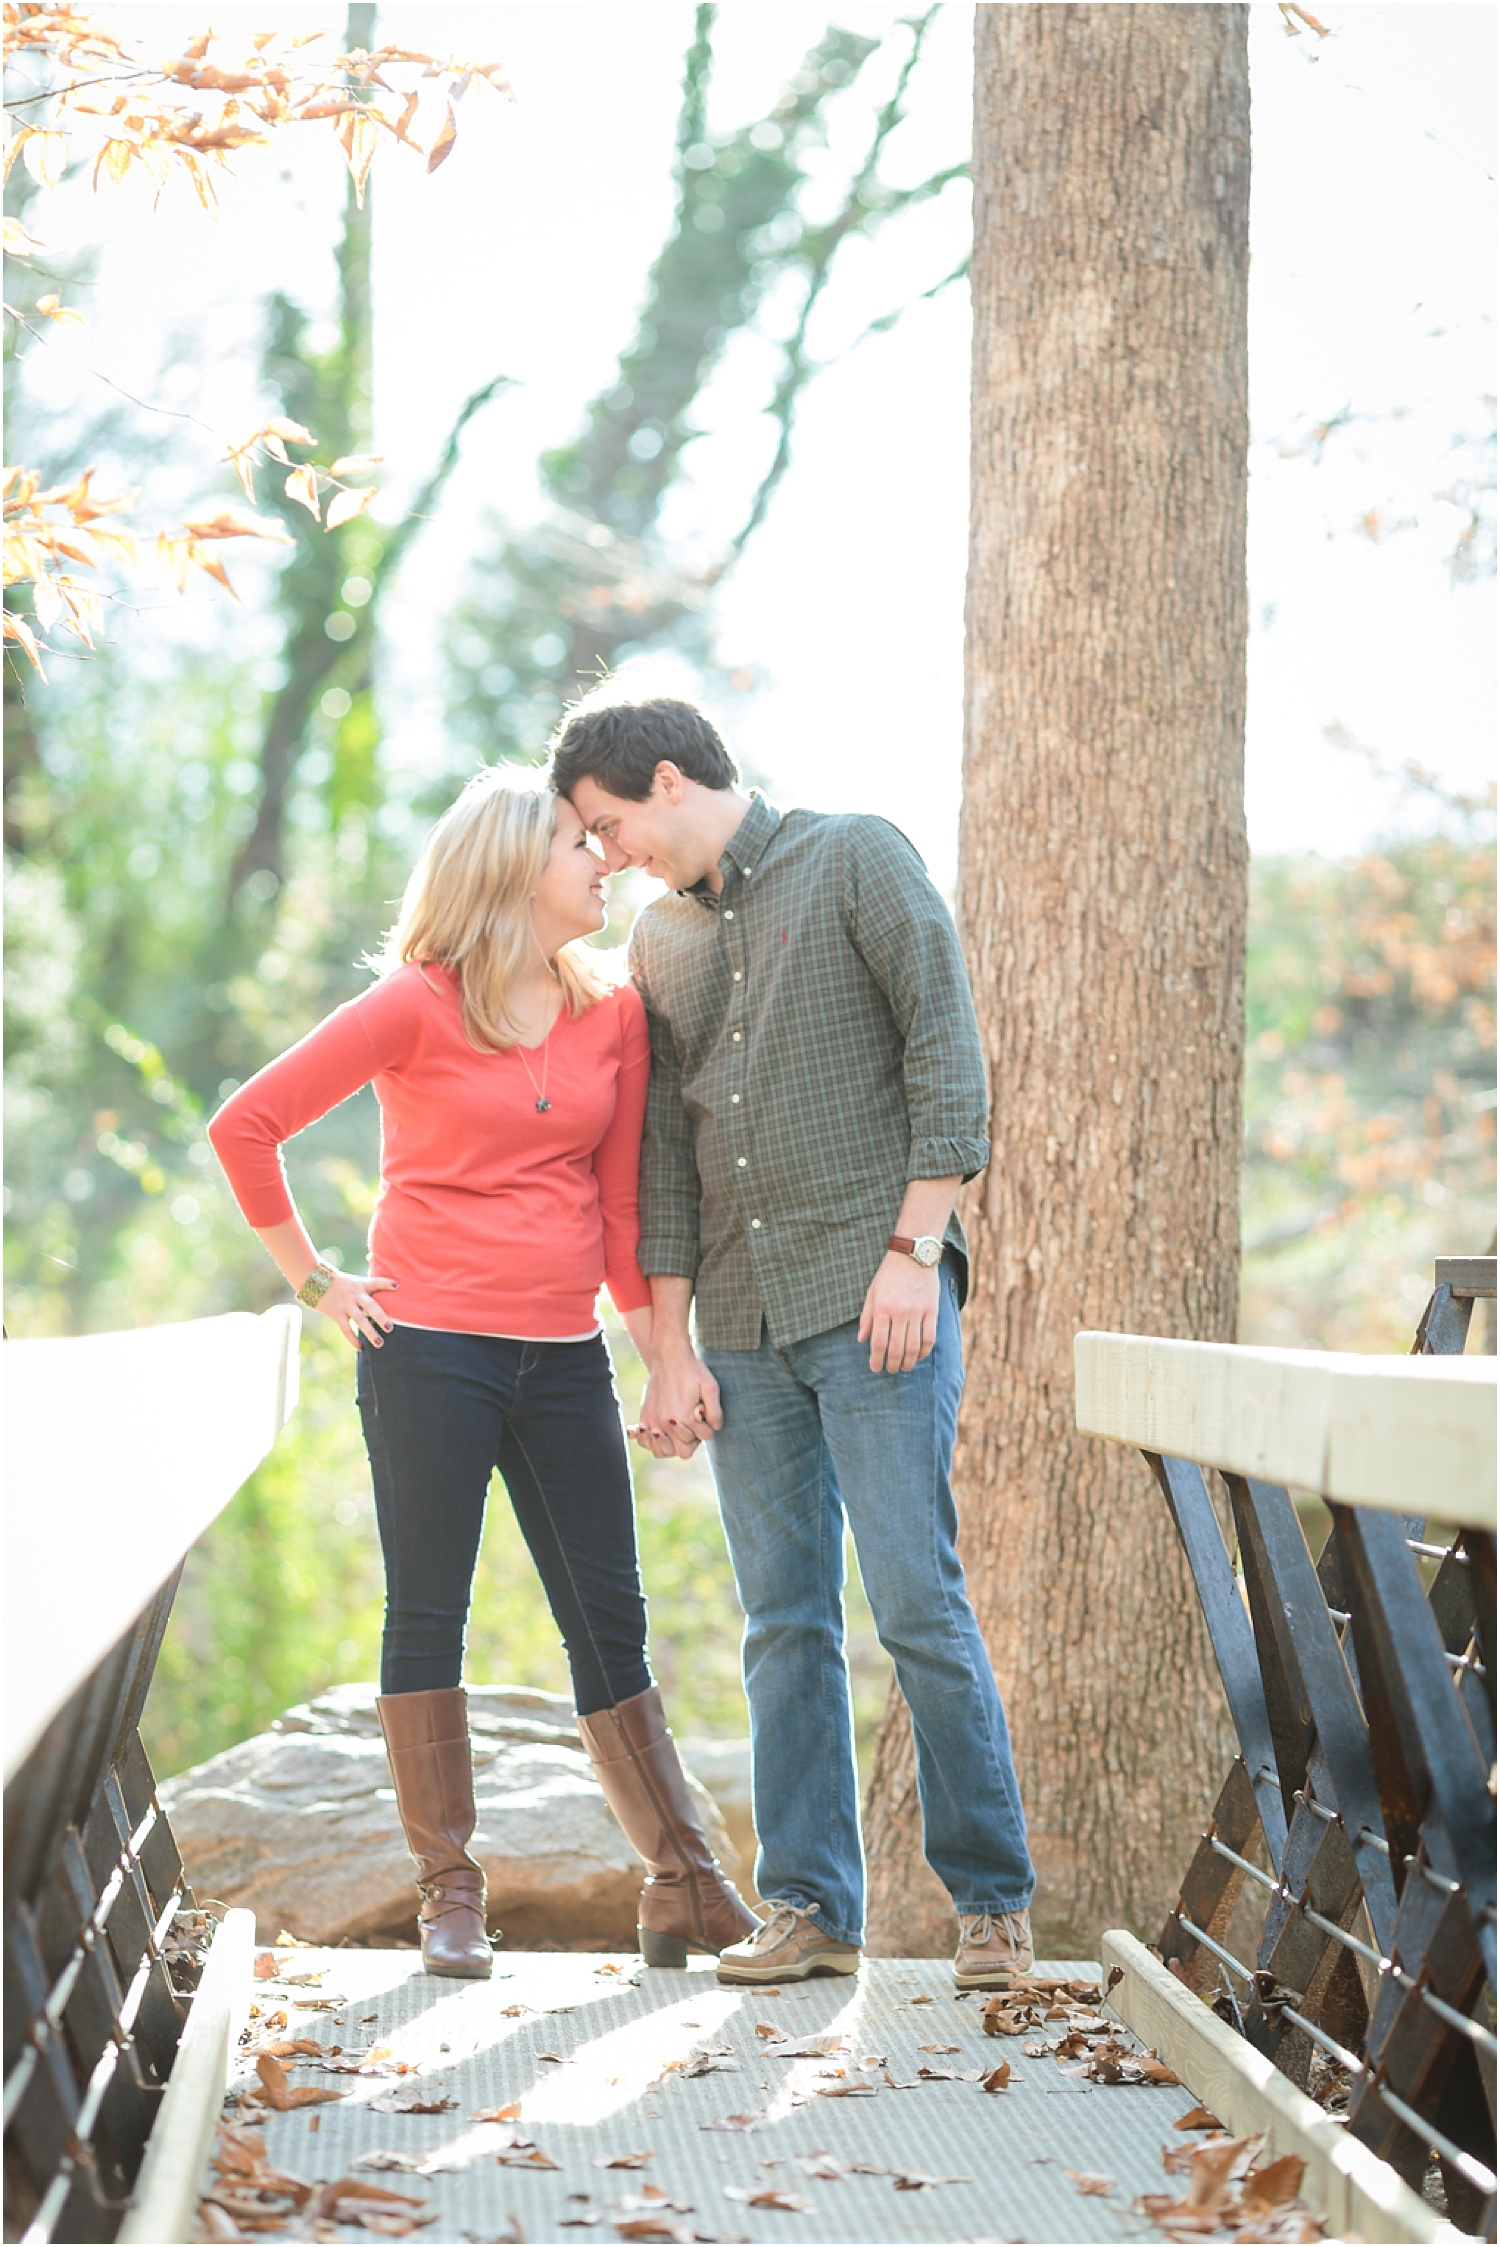 141207--9430clemson-engagement-shoot_blog.jpg